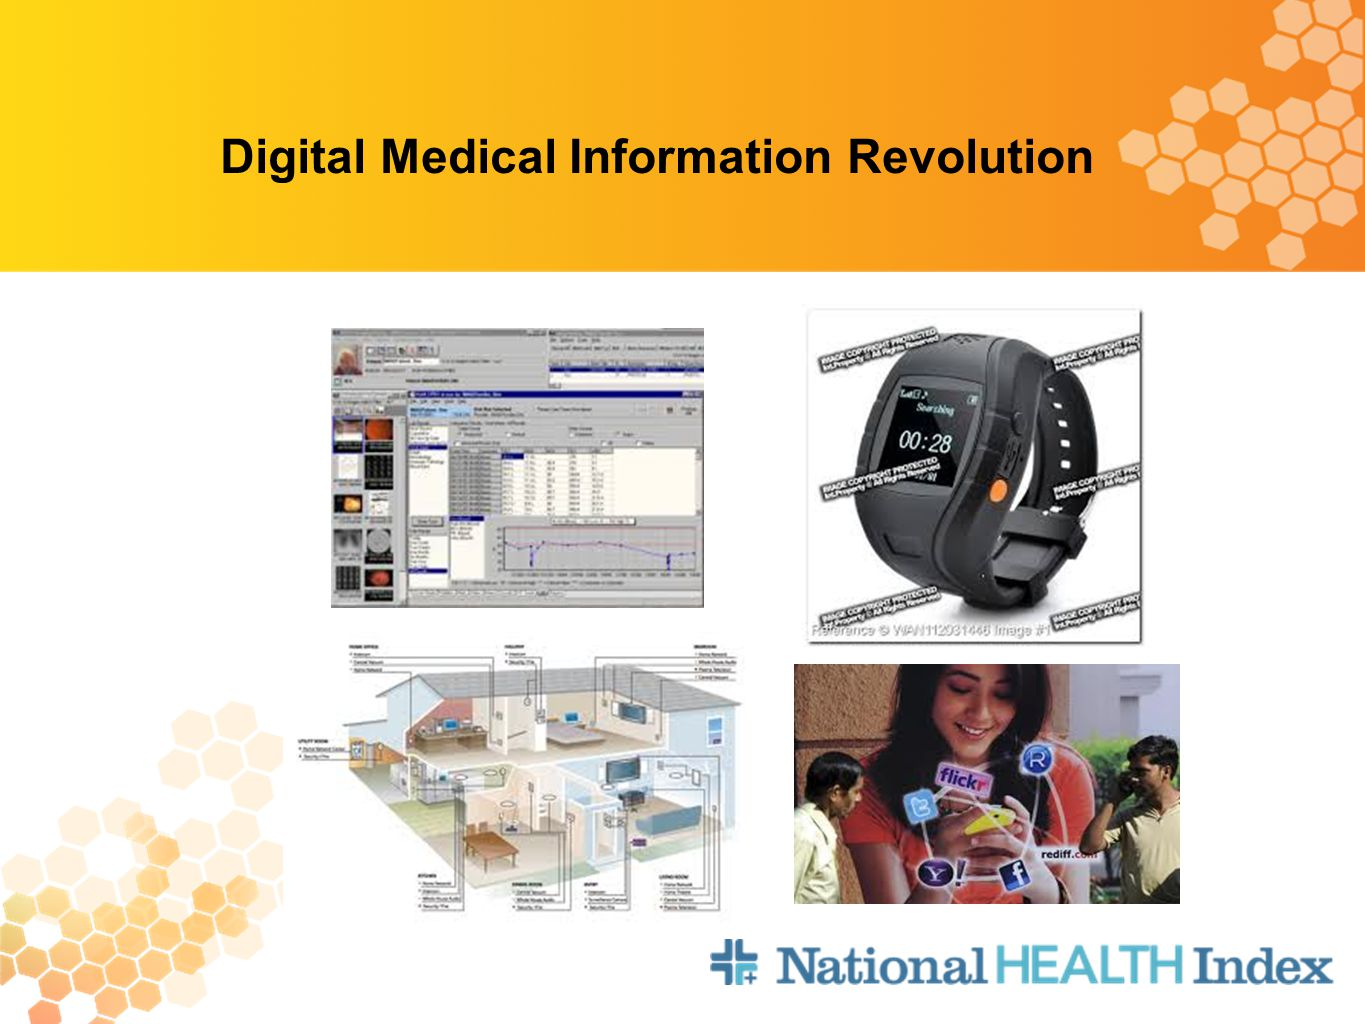 Digital Medical Information Revolution